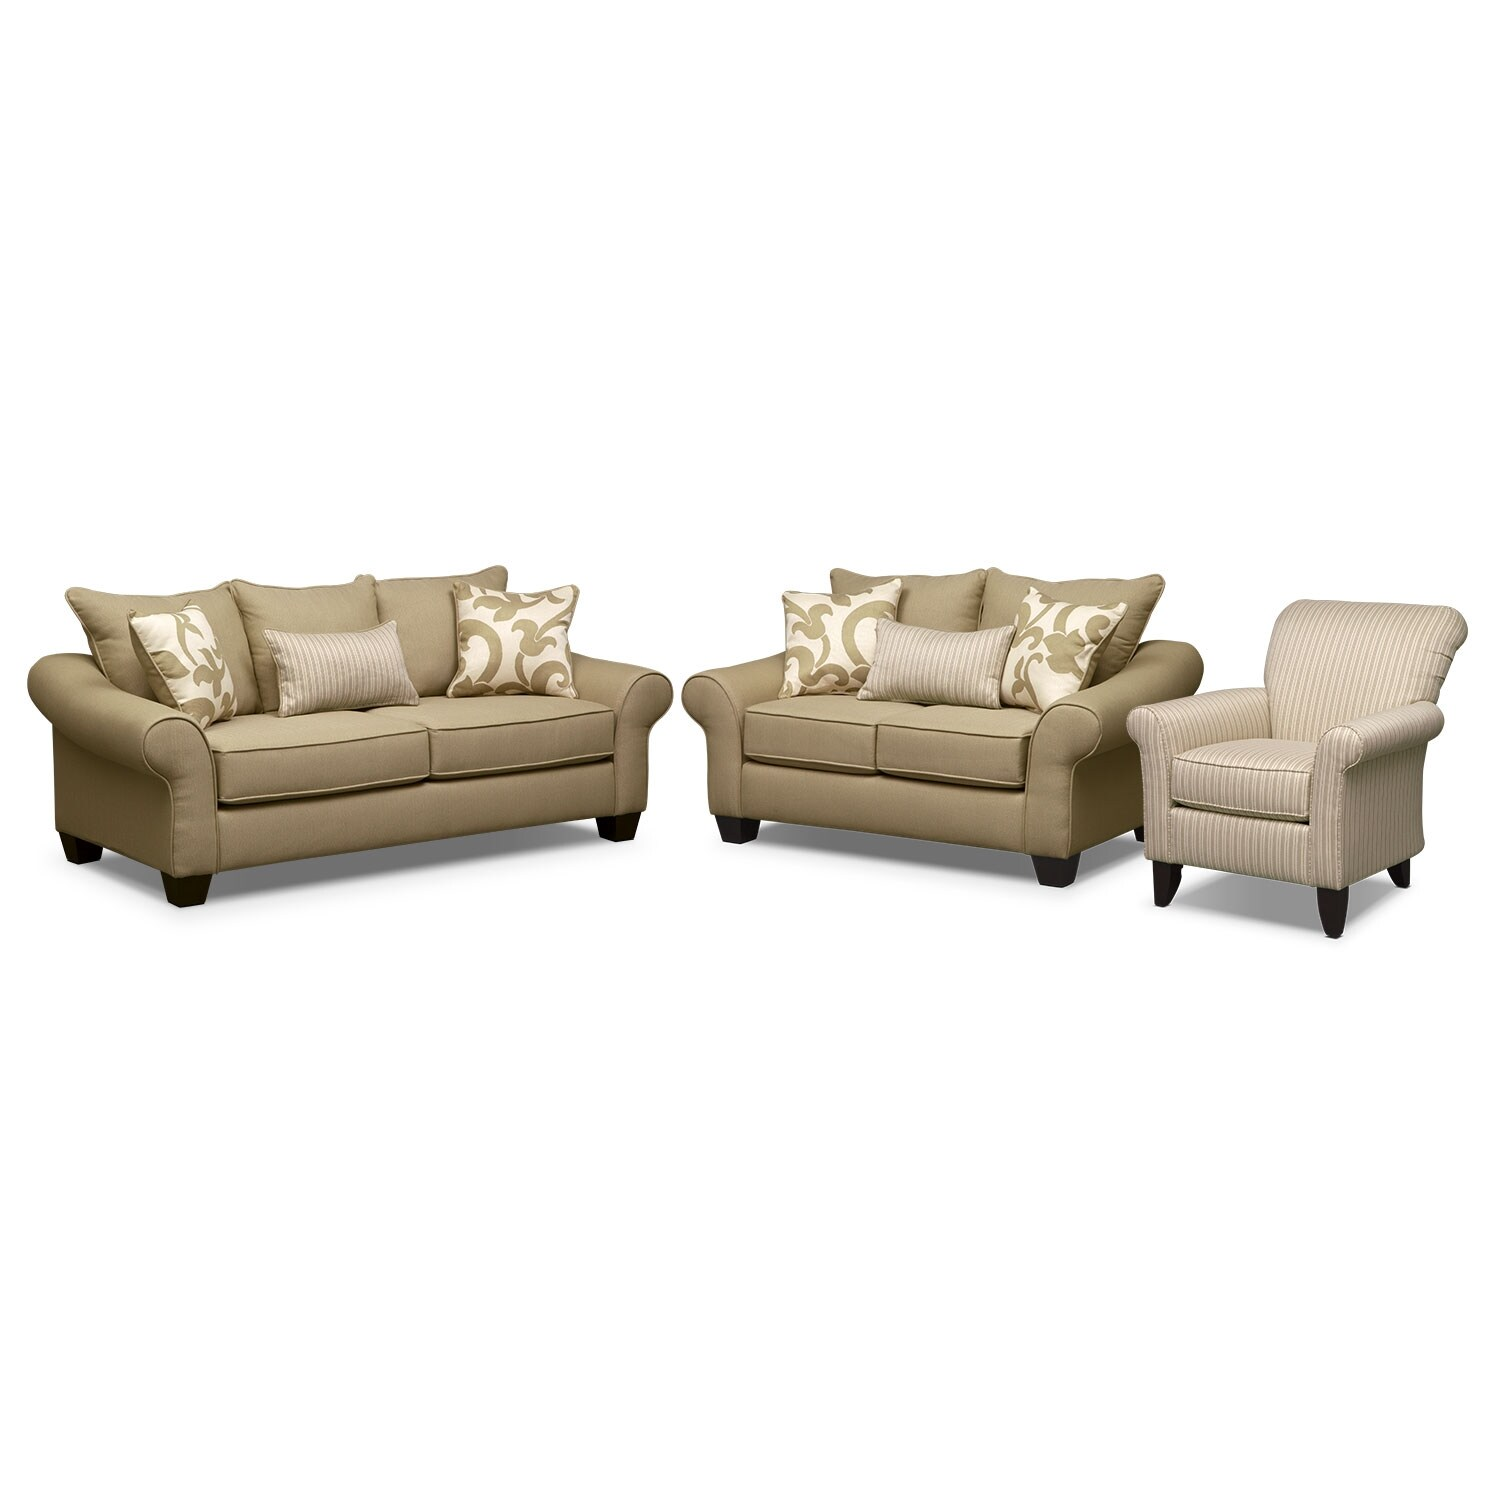 Picture Of Sofa With Chaise And Accent Chair: Colette Sofa, Loveseat And Accent Chair Set